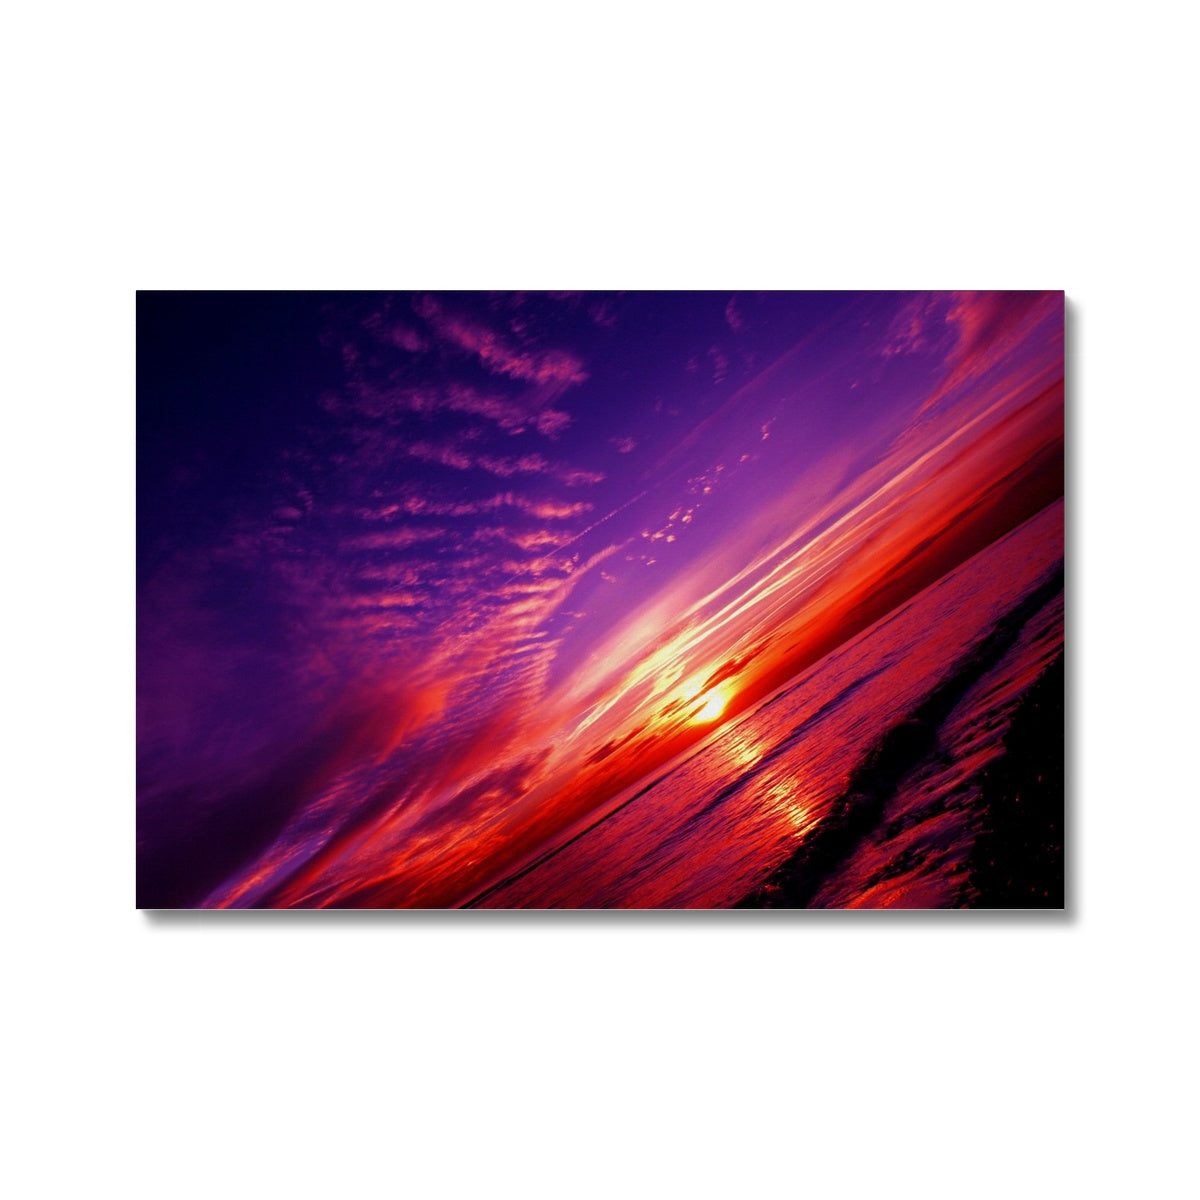 Sunset Dreams - Canvas